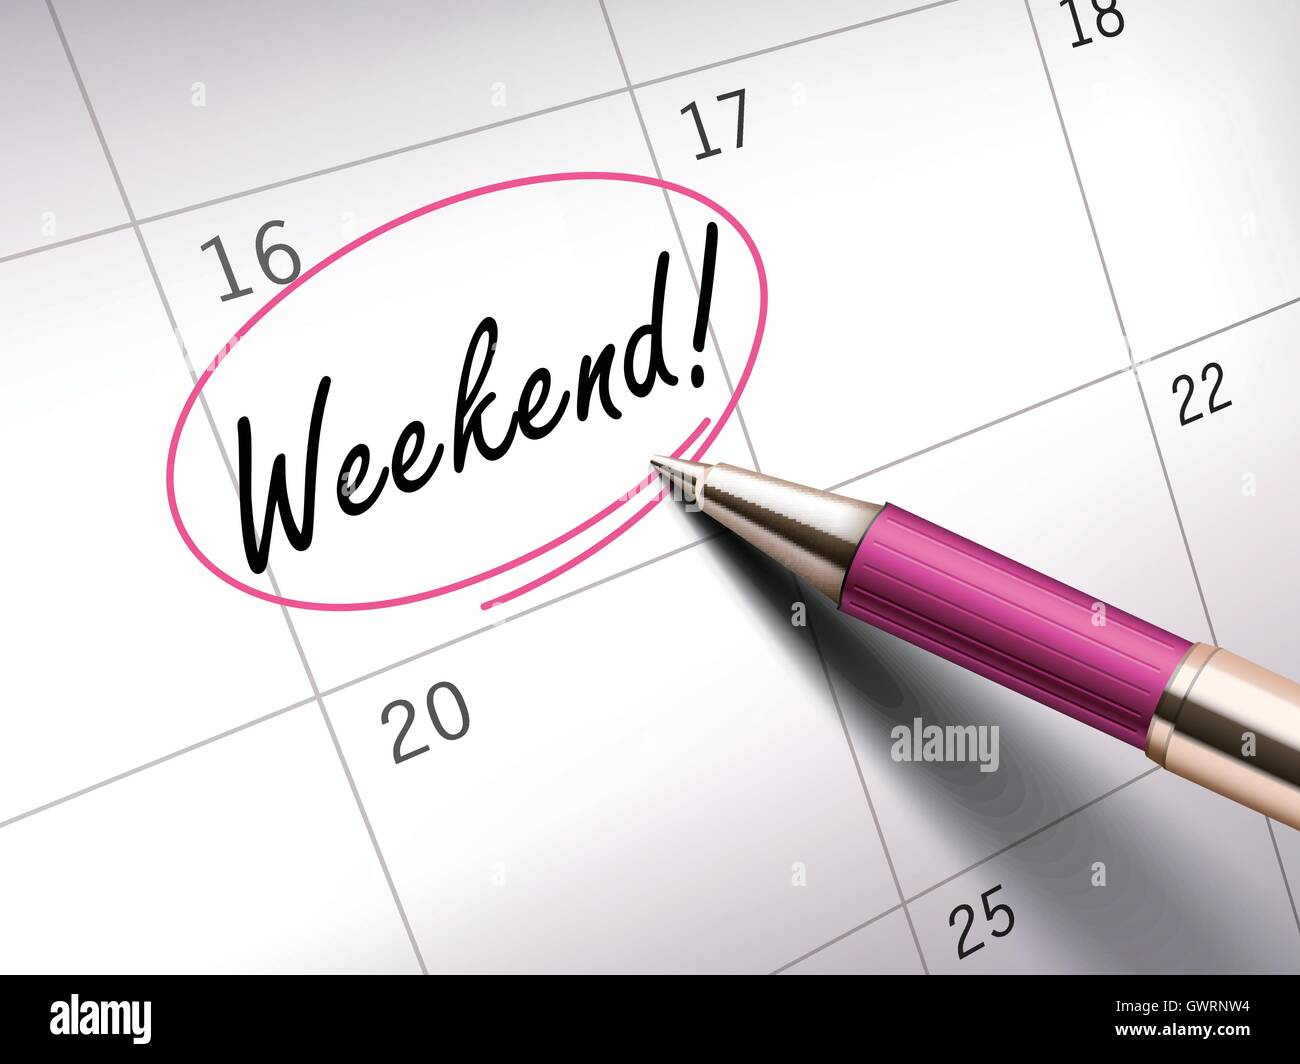 Weekend words circle marked on a calendar by a pink ballpoint pen - Stock Vector